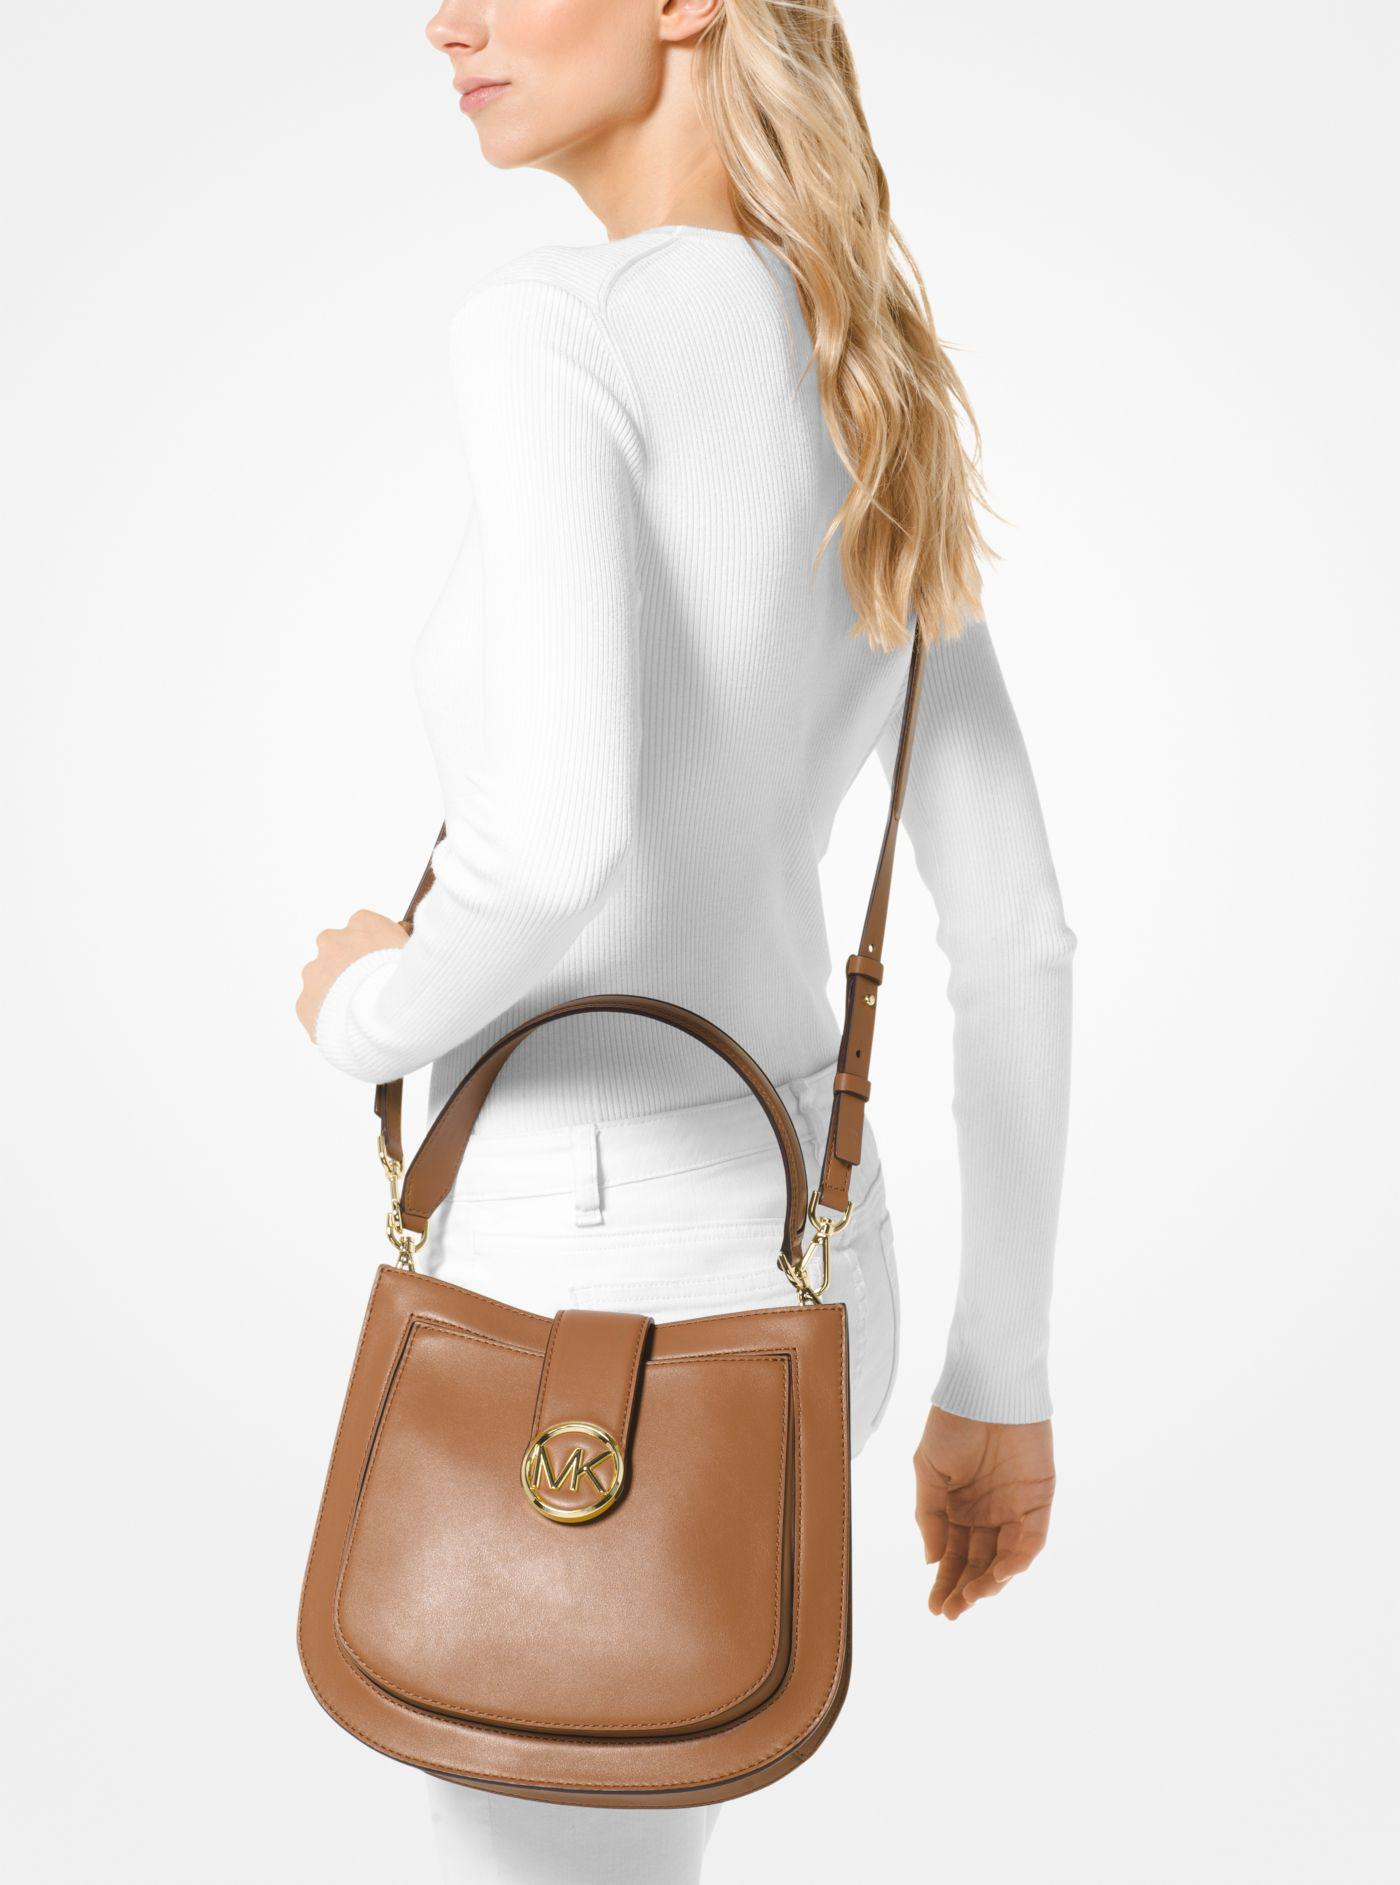 758dd6edd195 Michael Kors Lillie Medium Leather Shoulder Bag in Brown - Lyst